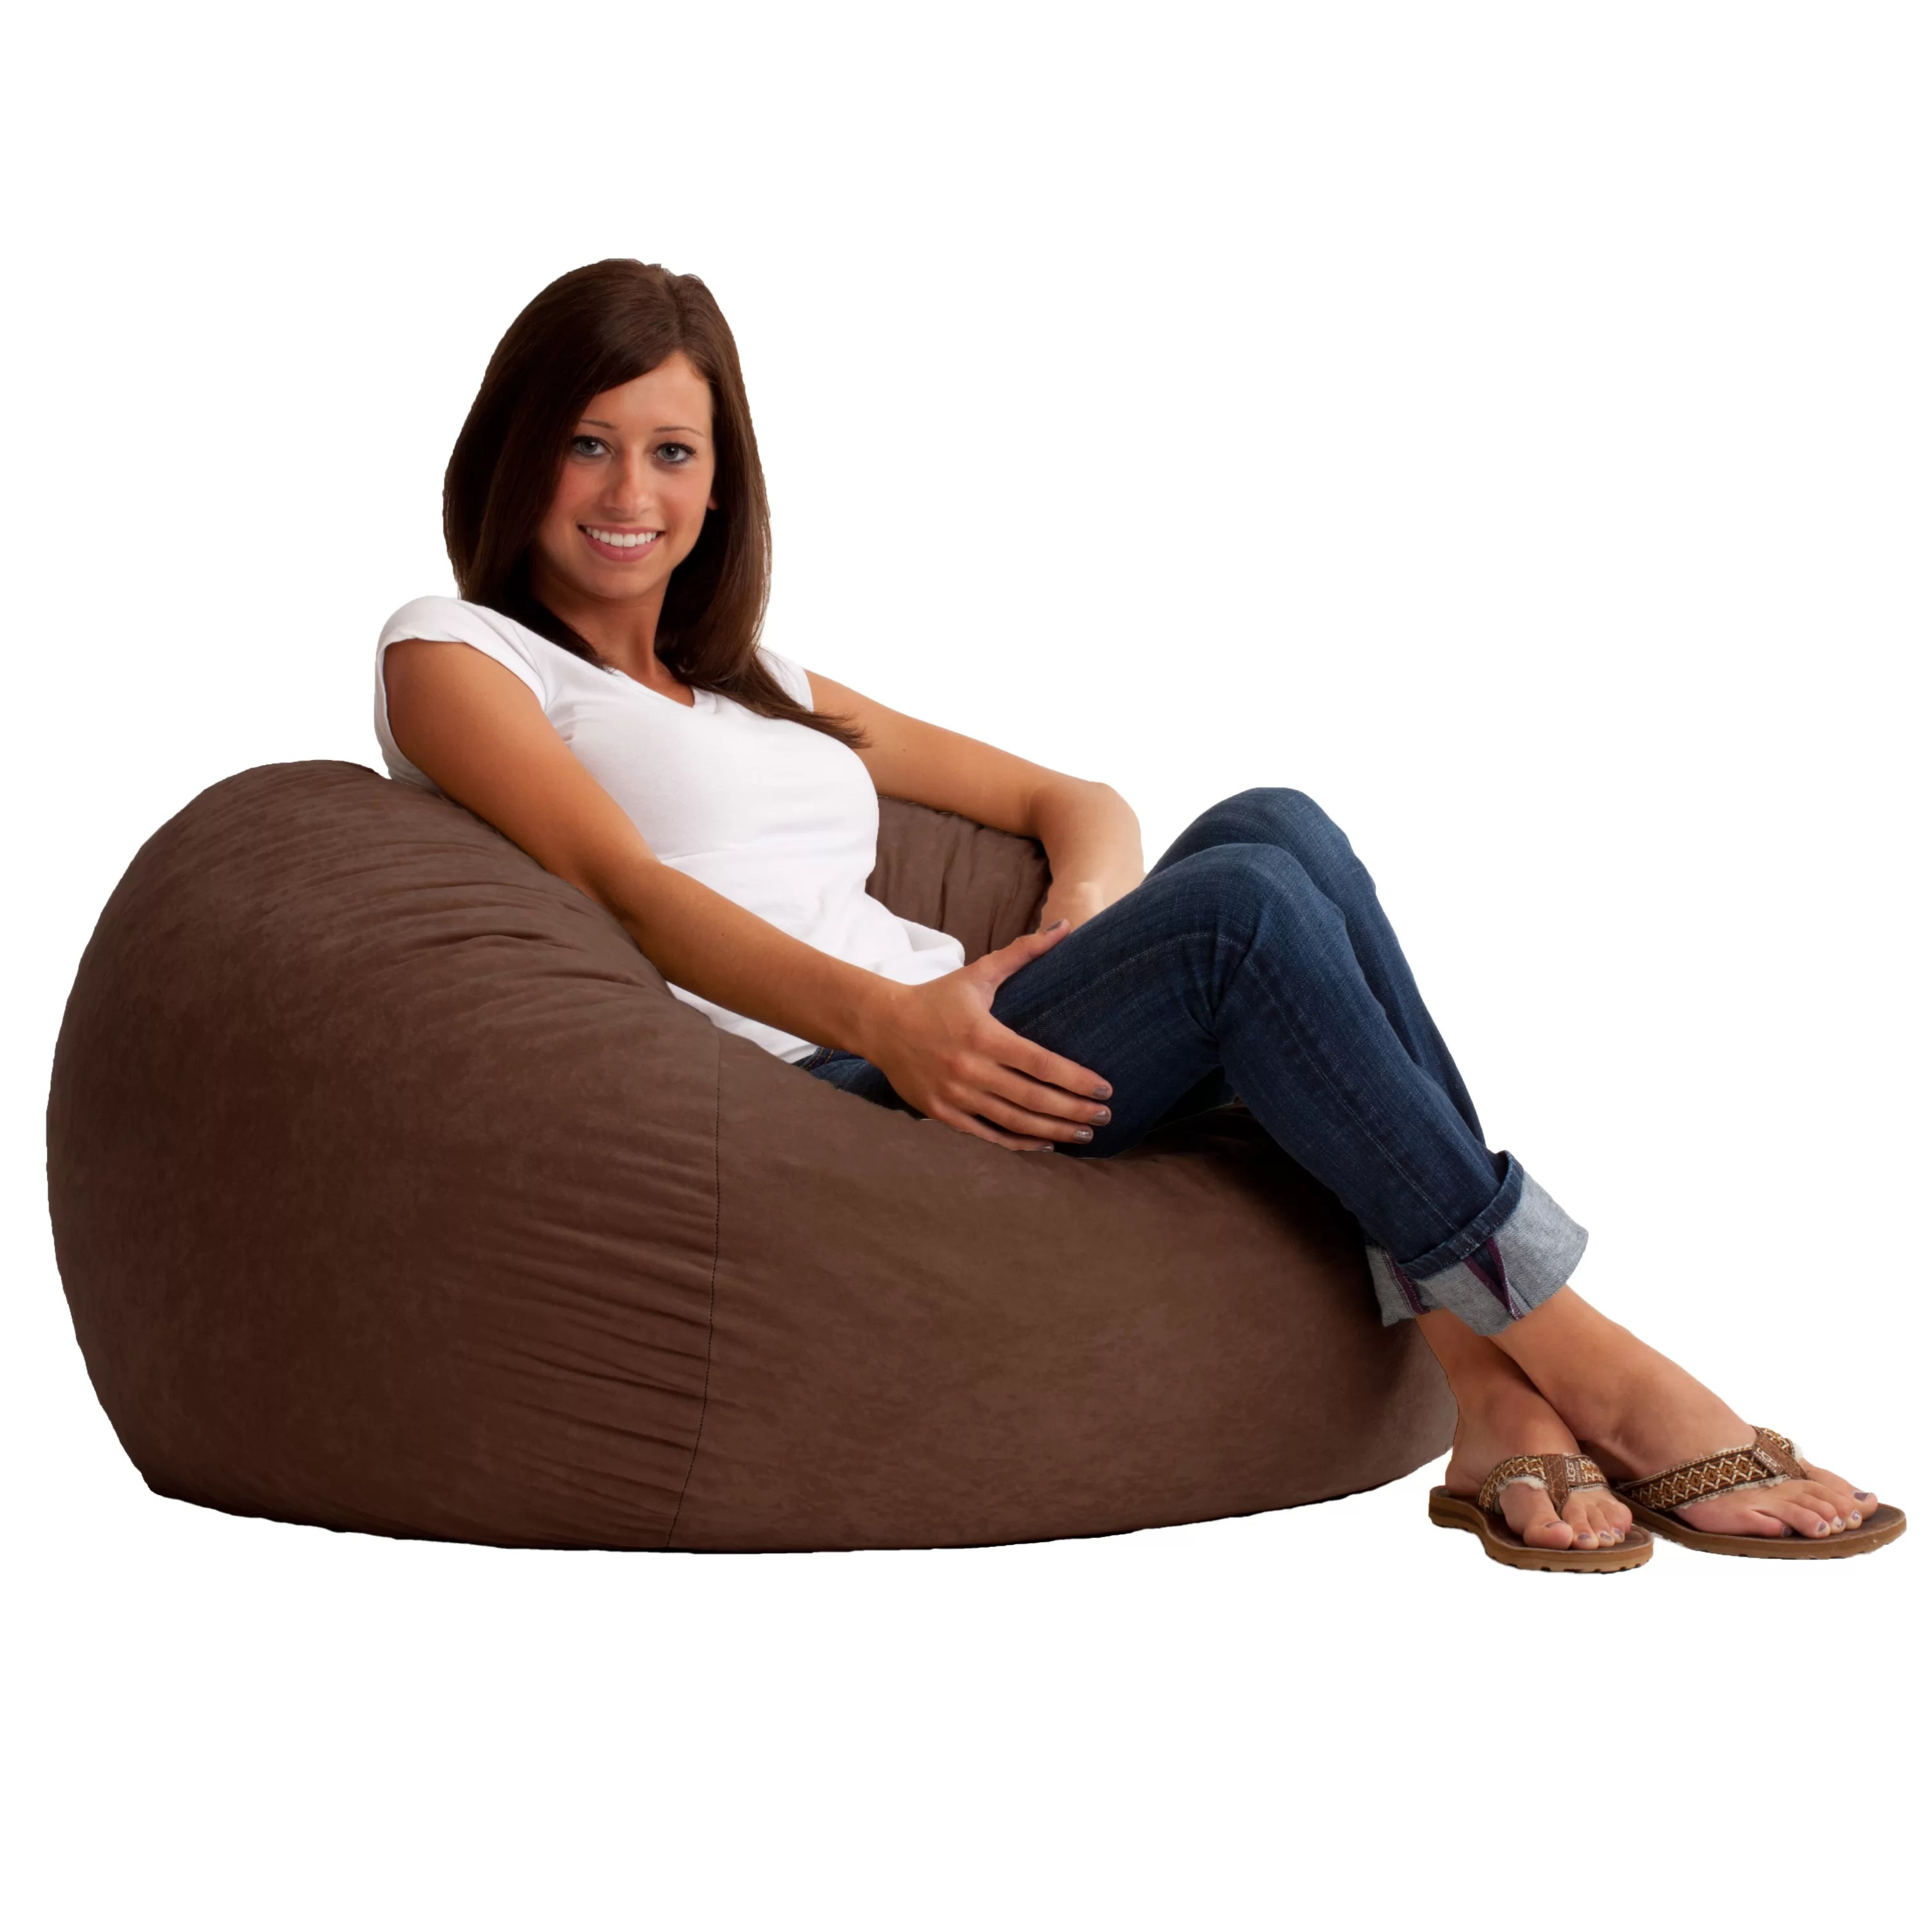 Comfortable Bean Bag Chairs Comfort Research Fuf Bean Bag Chair And Reviews Wayfair